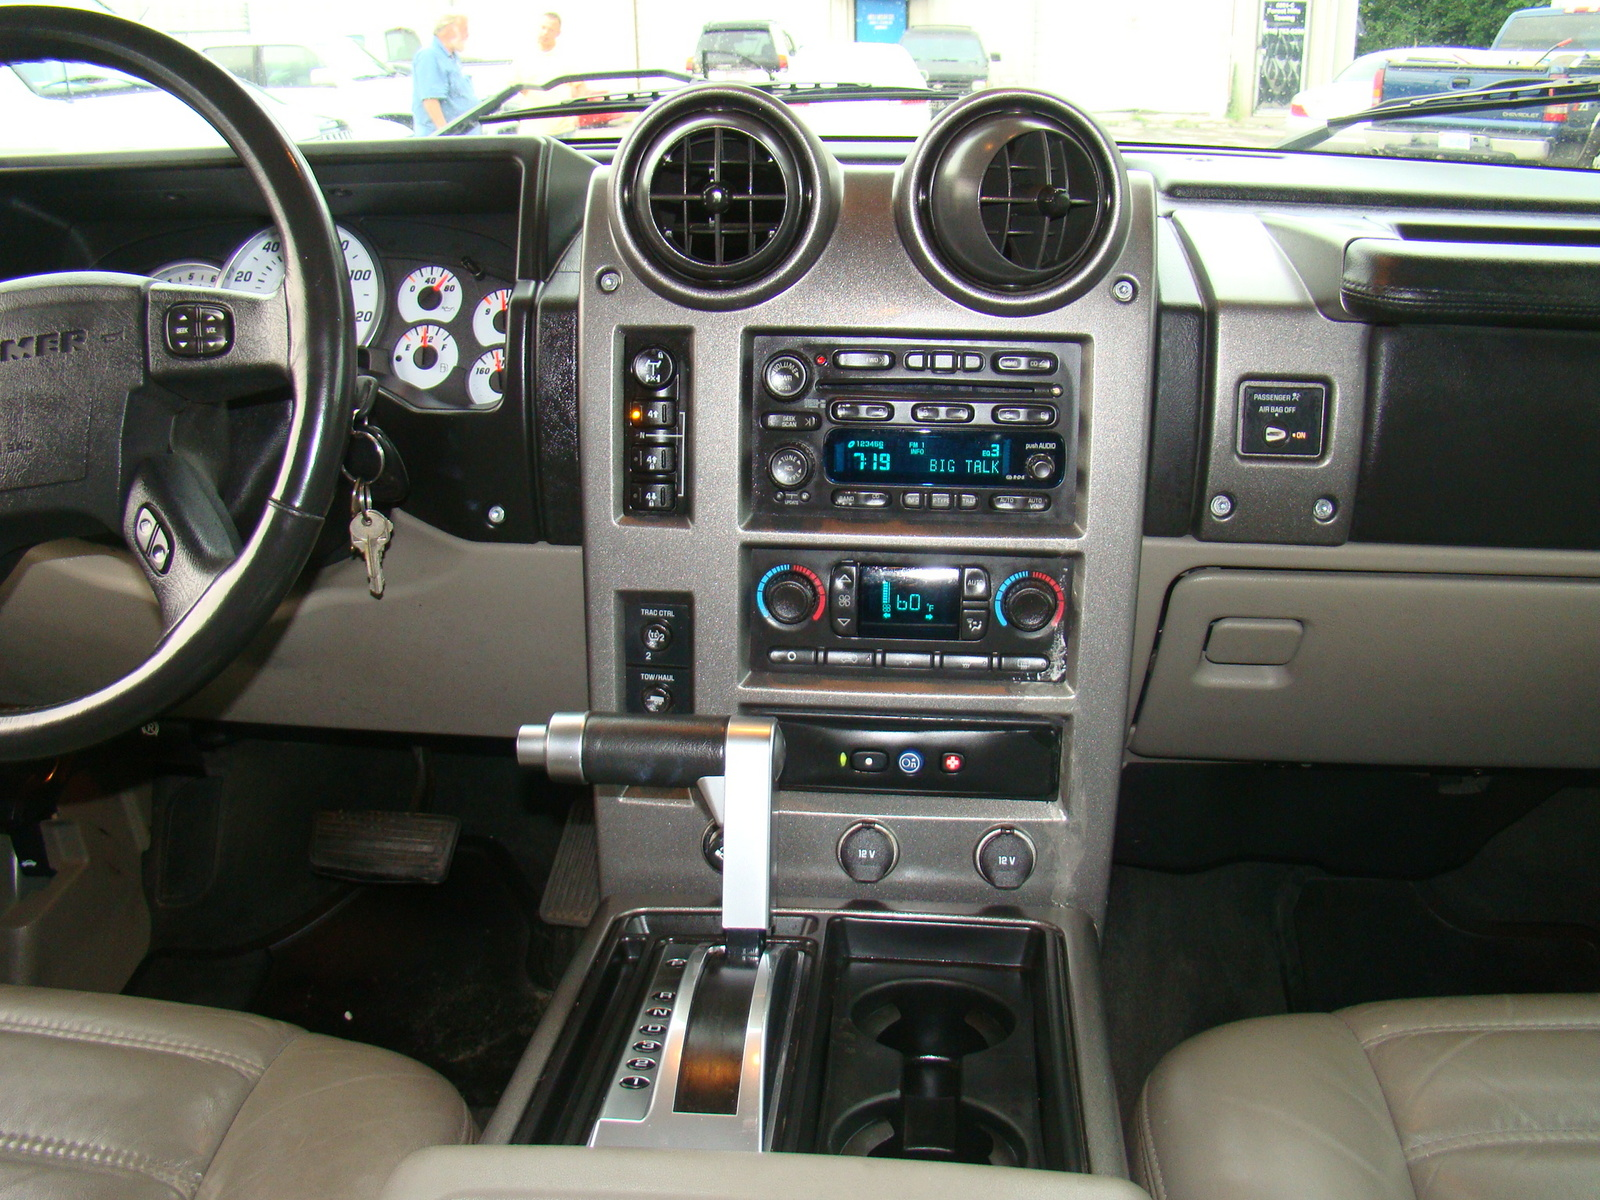 2003 hummer h2 interior wallpaper 1600x1200 12172 2003 hummer h2 interior vanachro Images